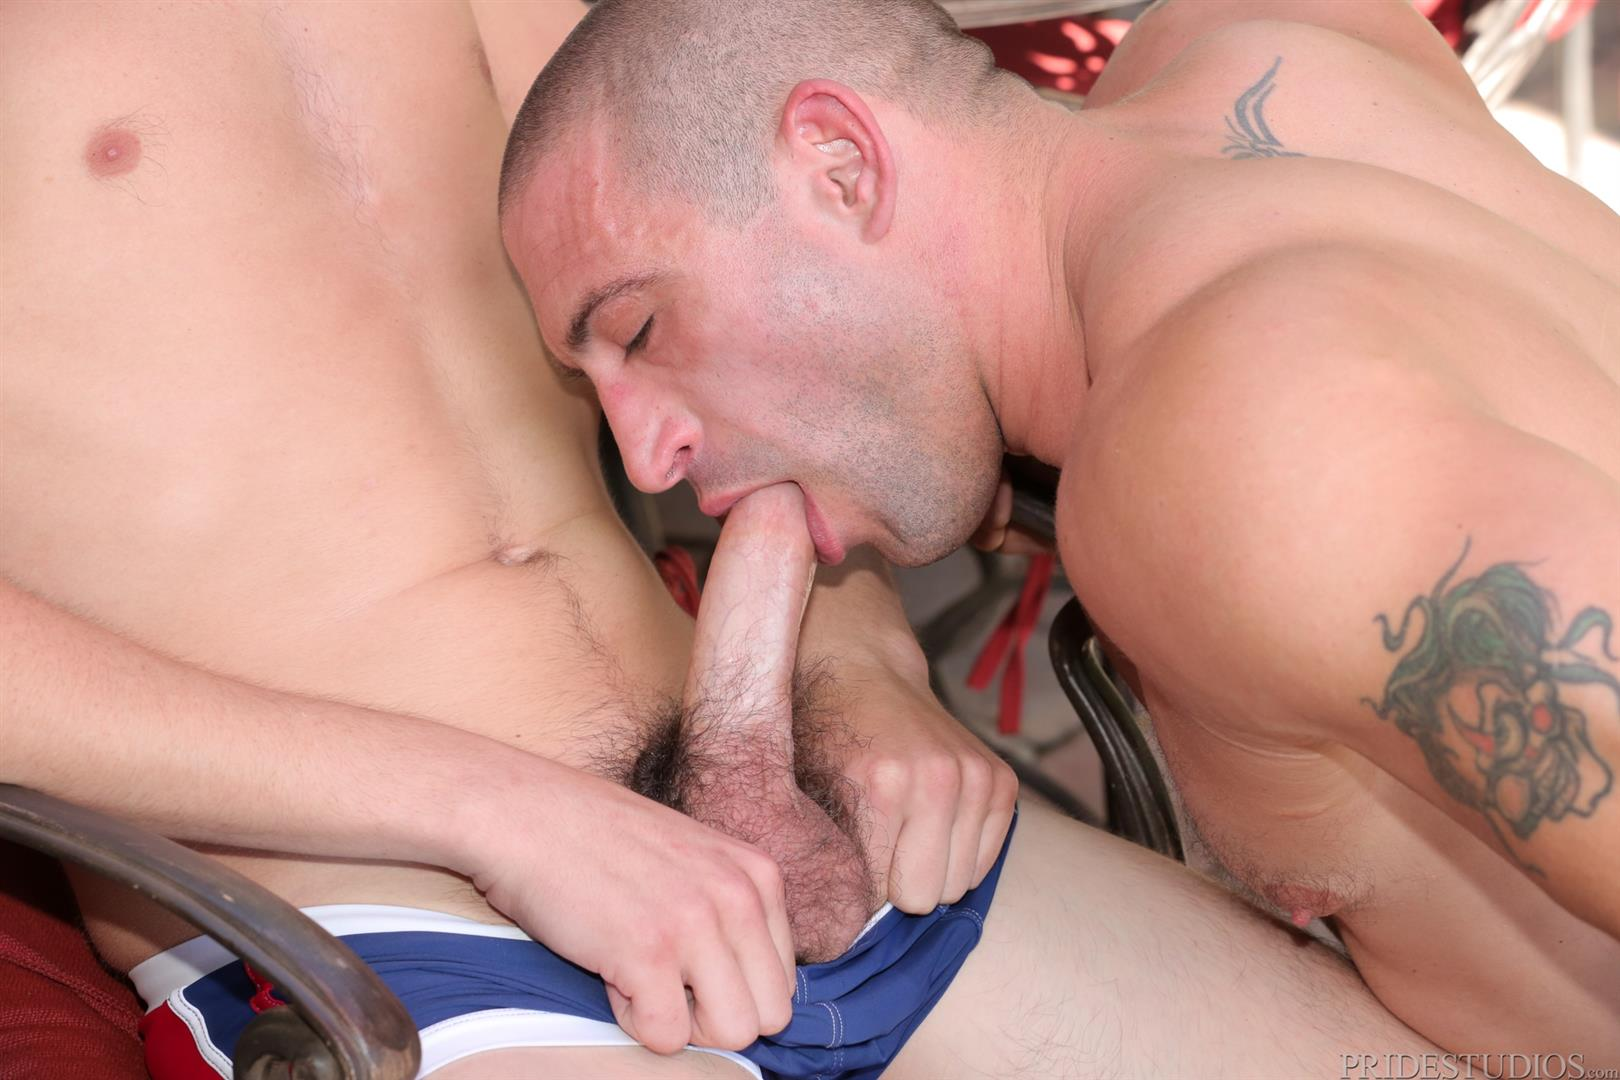 Dylan-Lucas-Timothy-Rivers-and-Ceasar-Camaro-Younger-Guy-Fucking-A-Muscle-Daddy-06 Muscular Pool Daddy Takes A Younger Cock Up The Ass At A Palm Springs Gay Resort